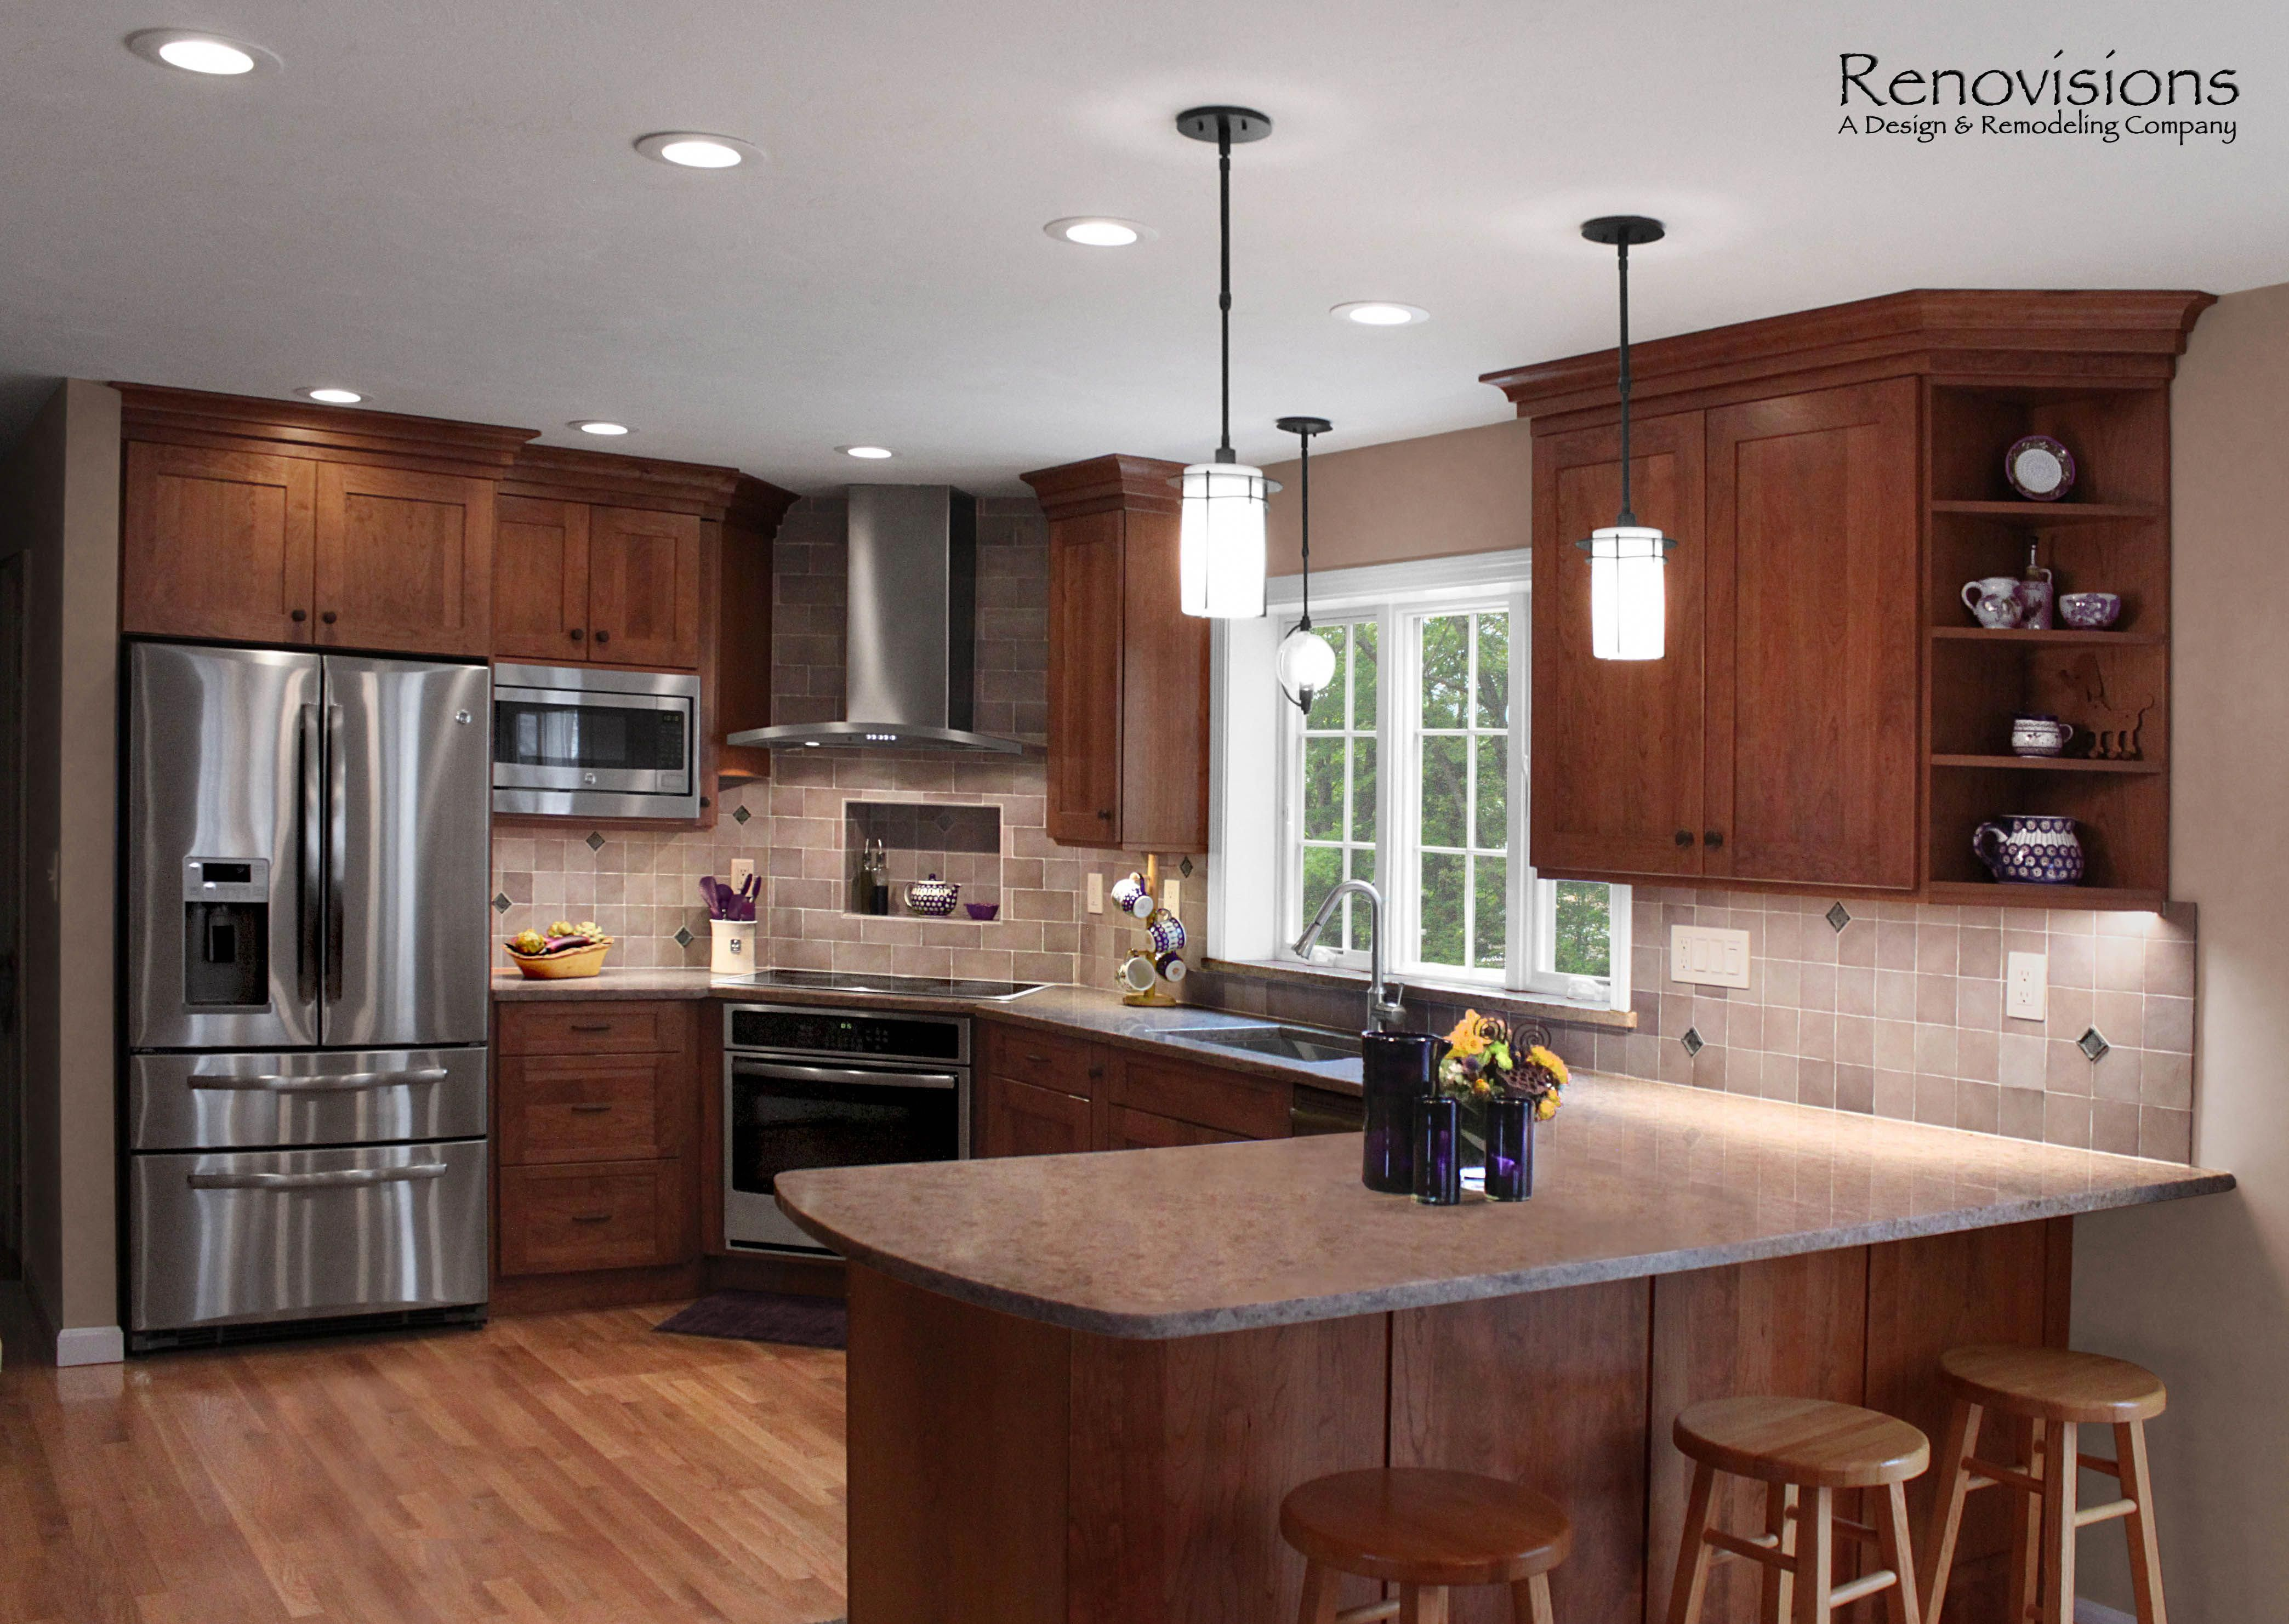 kitchen remodel by renovisions induction cooktop stainless steel appliances cherry cabinets on kitchen remodel appliances id=25517